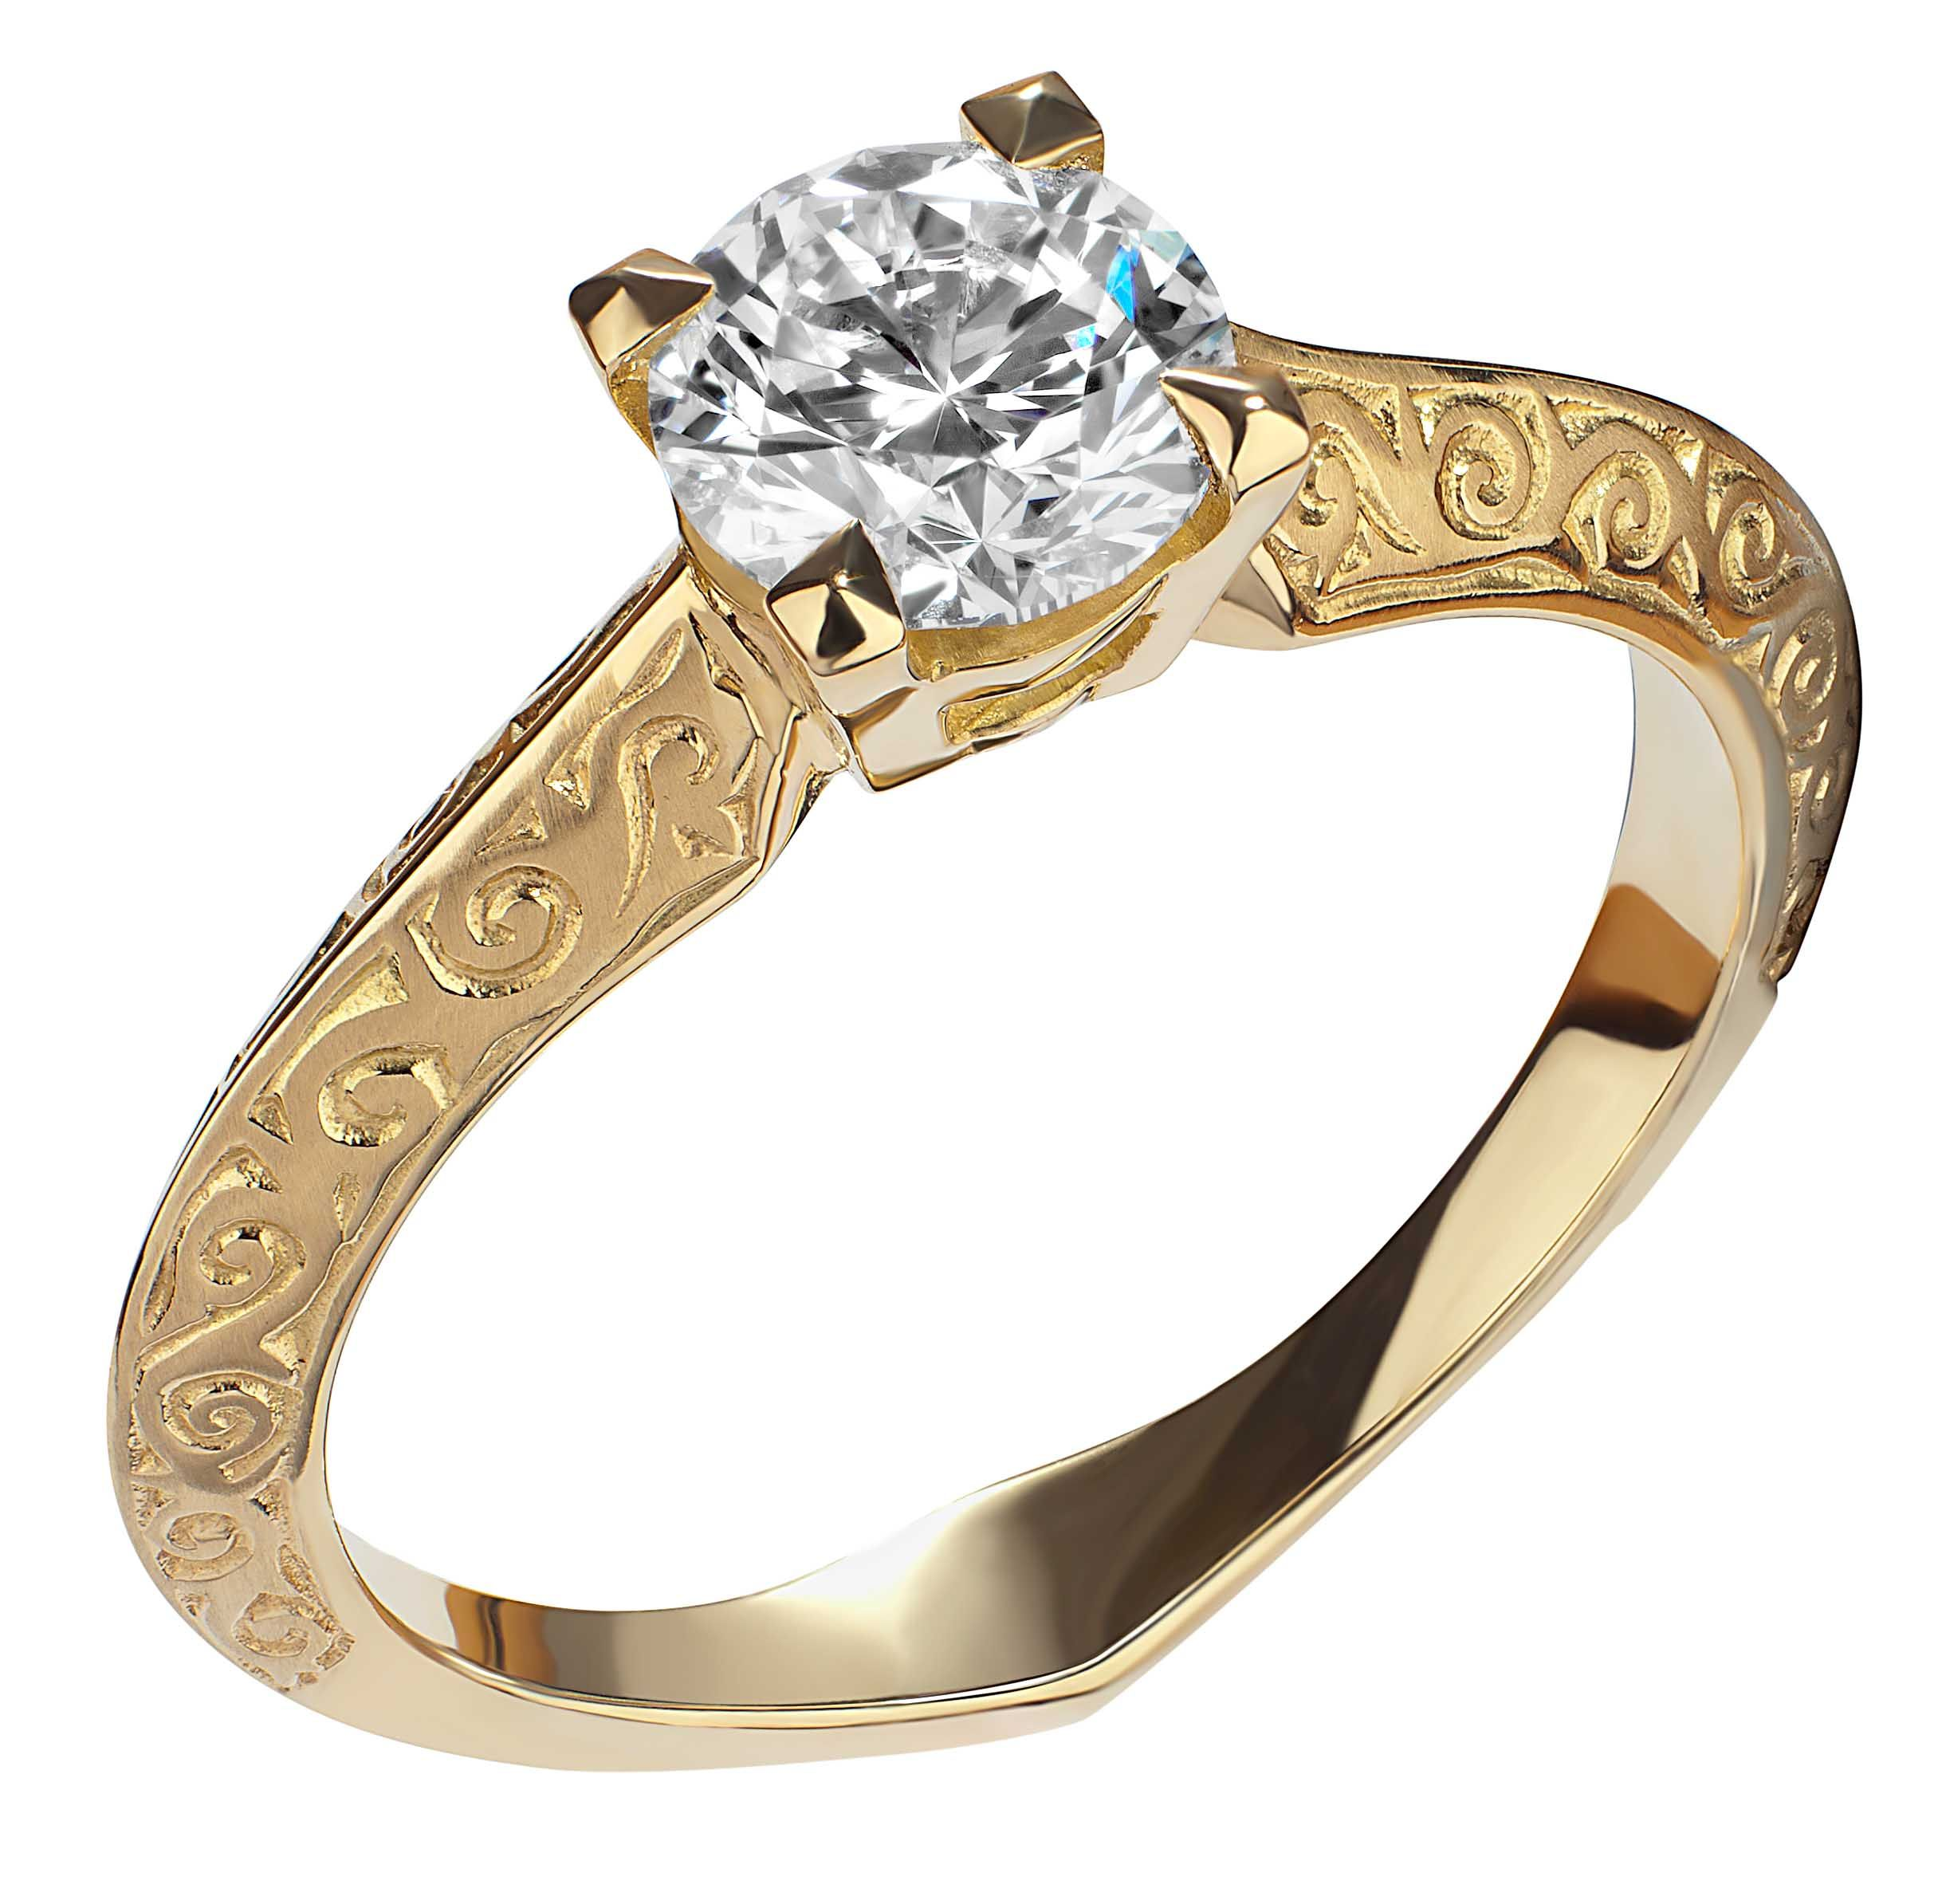 ringcaroline view brook wedding engagement karat of carat throughout textured ideas rings gold